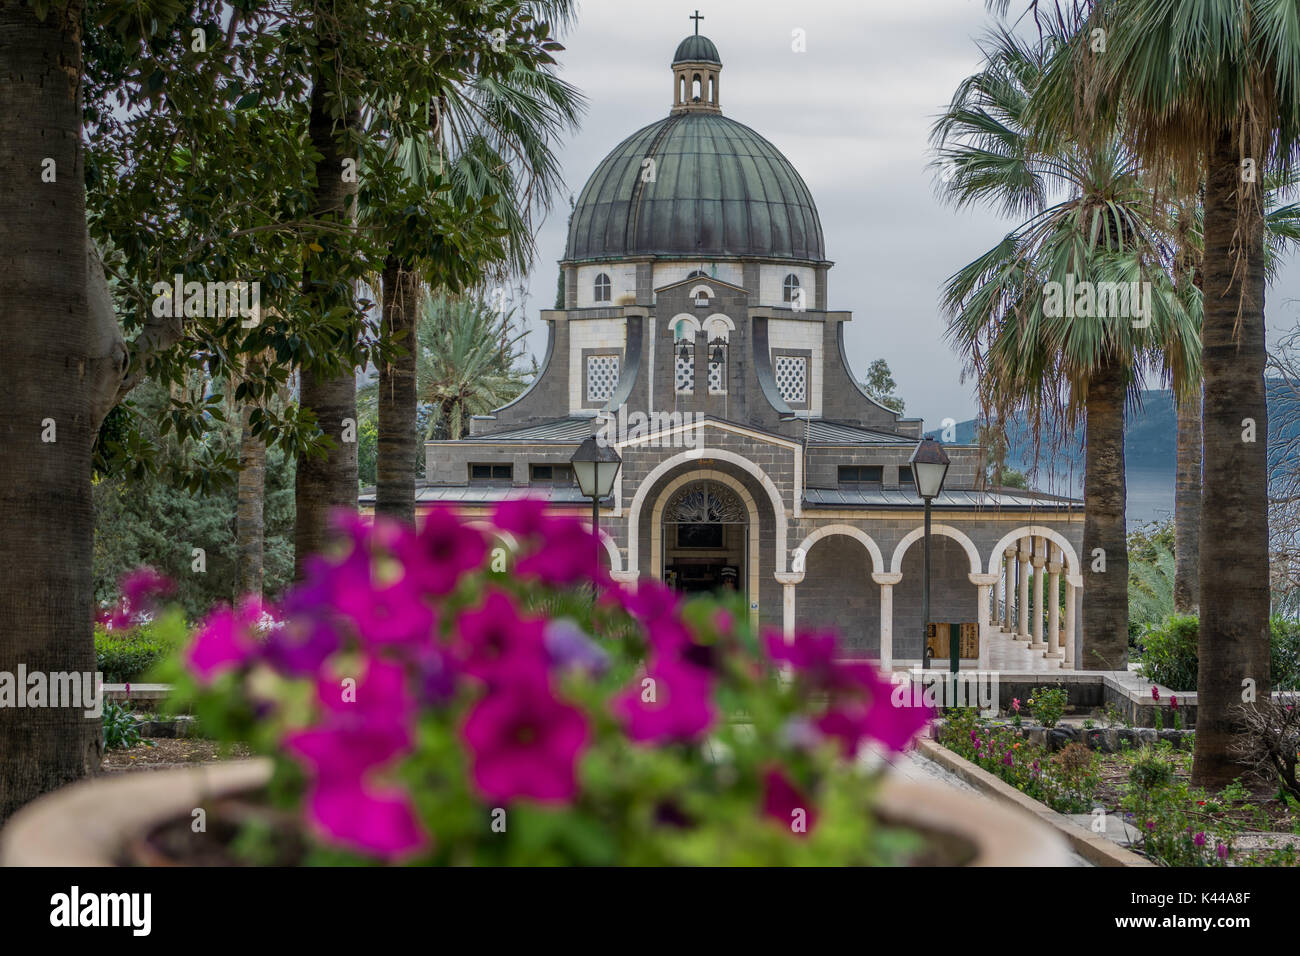 Temple of beatitudes with flowers Stock Photo